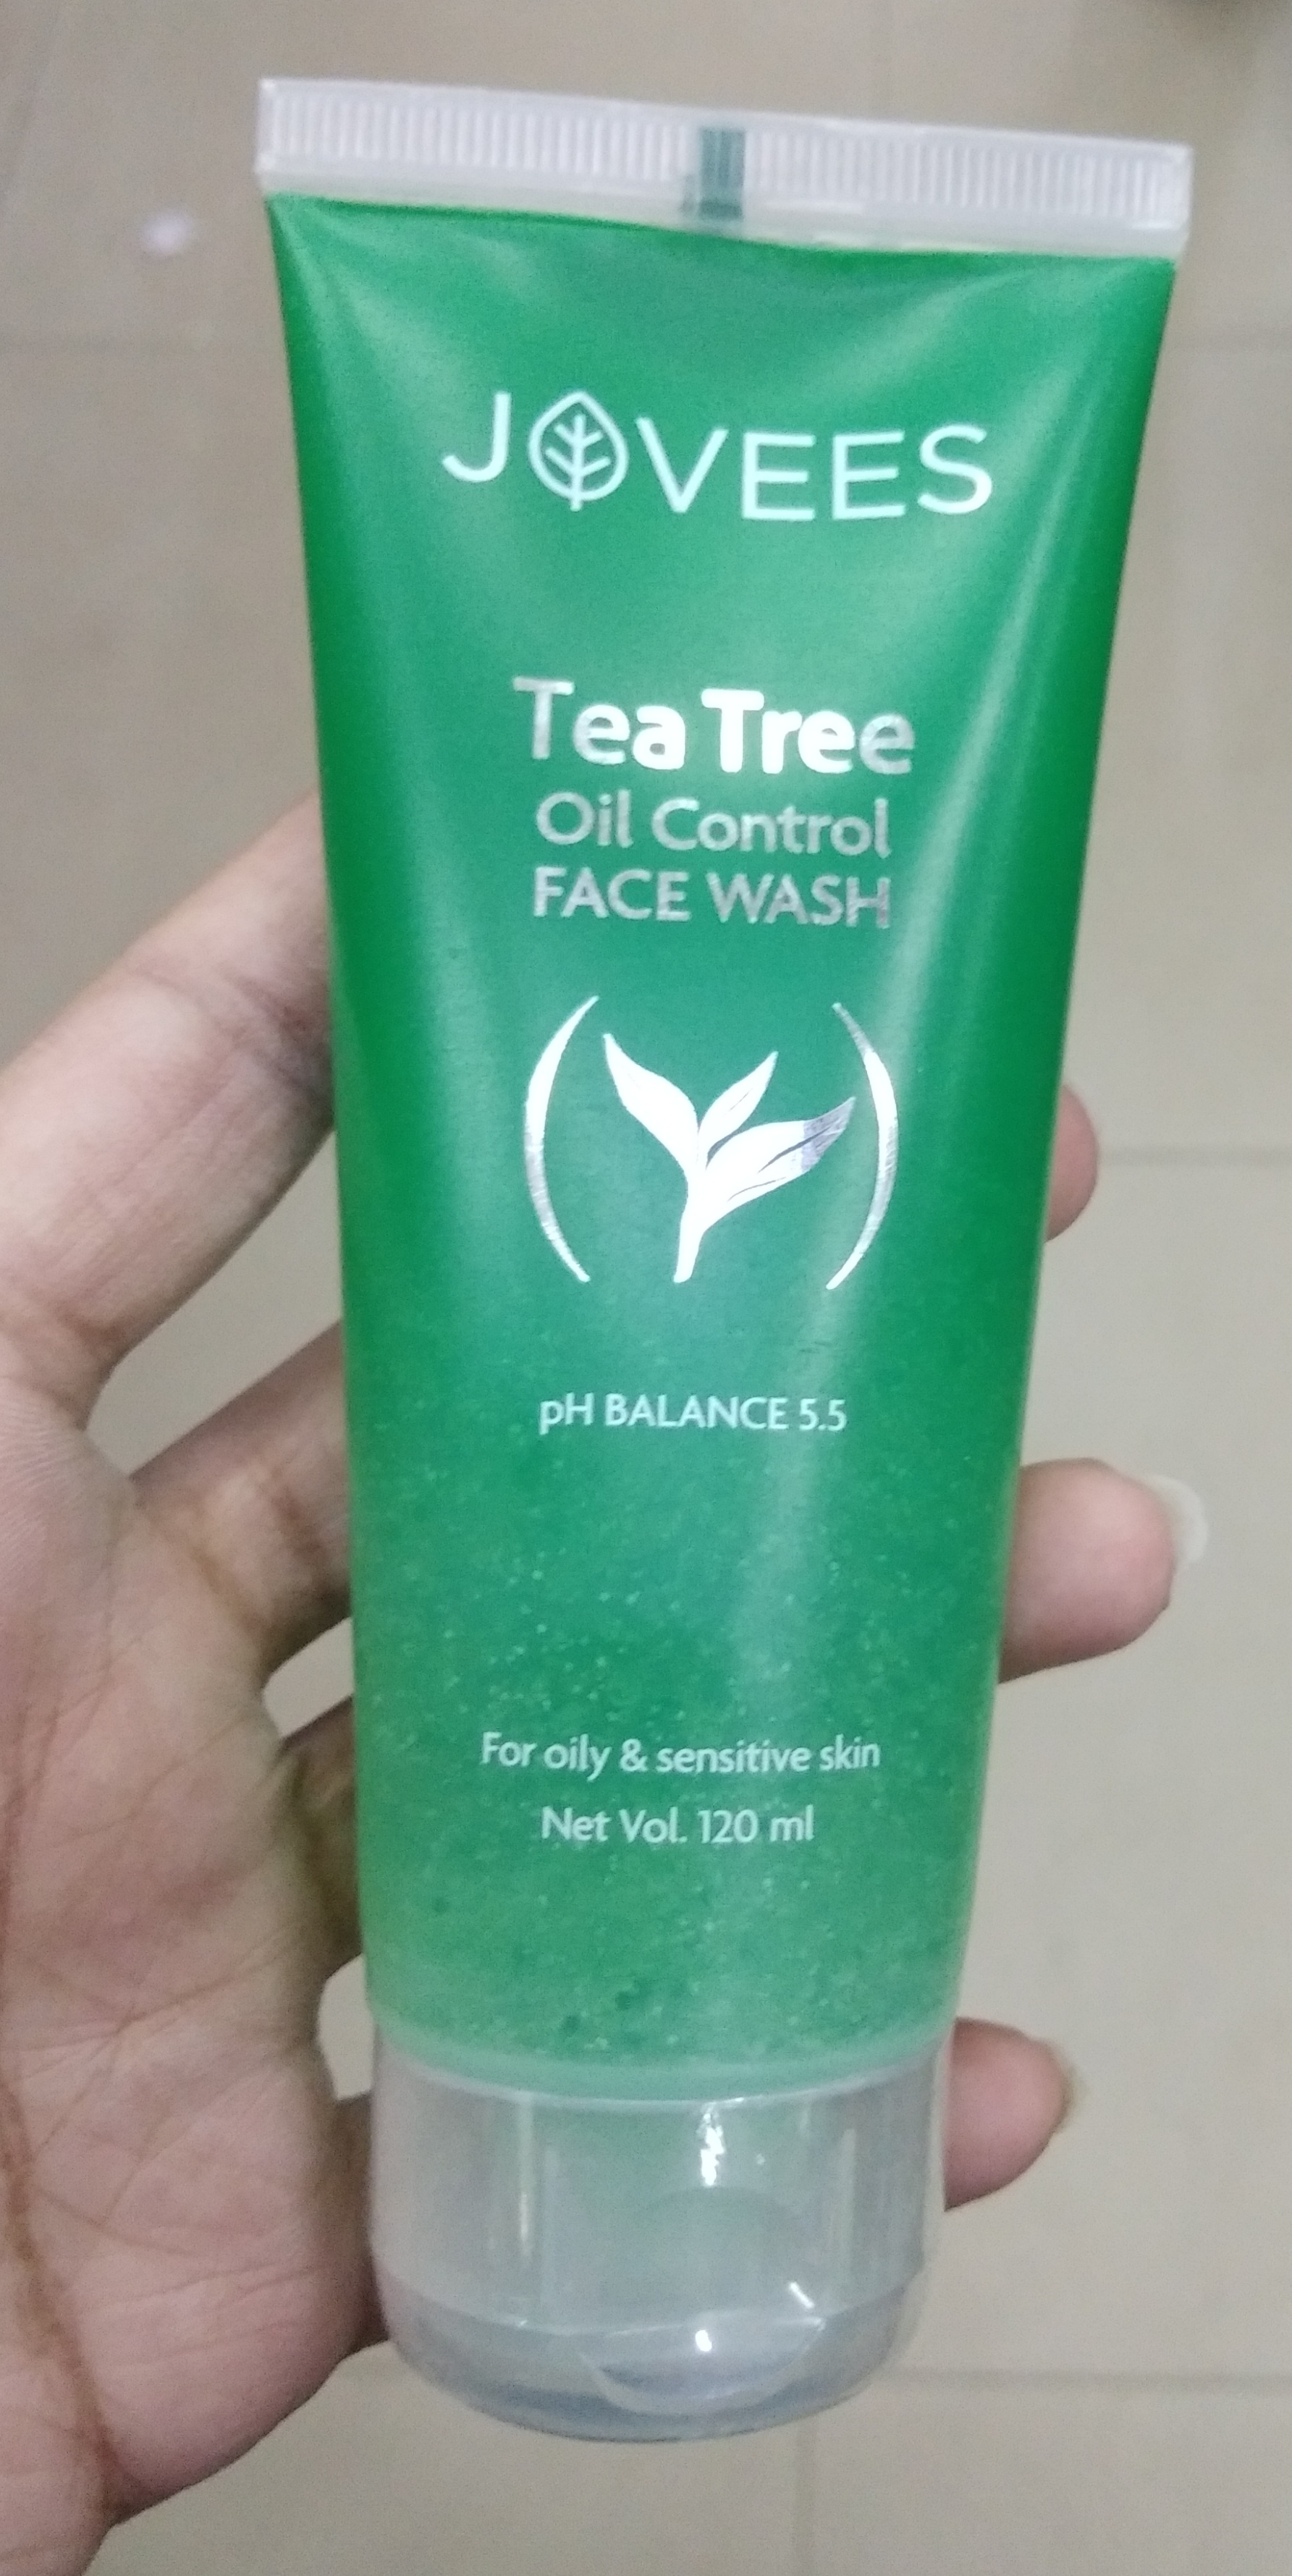 Jovees Tea Tree Oil Control Face Wash-Reduces acne slightly but no drastic change-By Nasreen-2